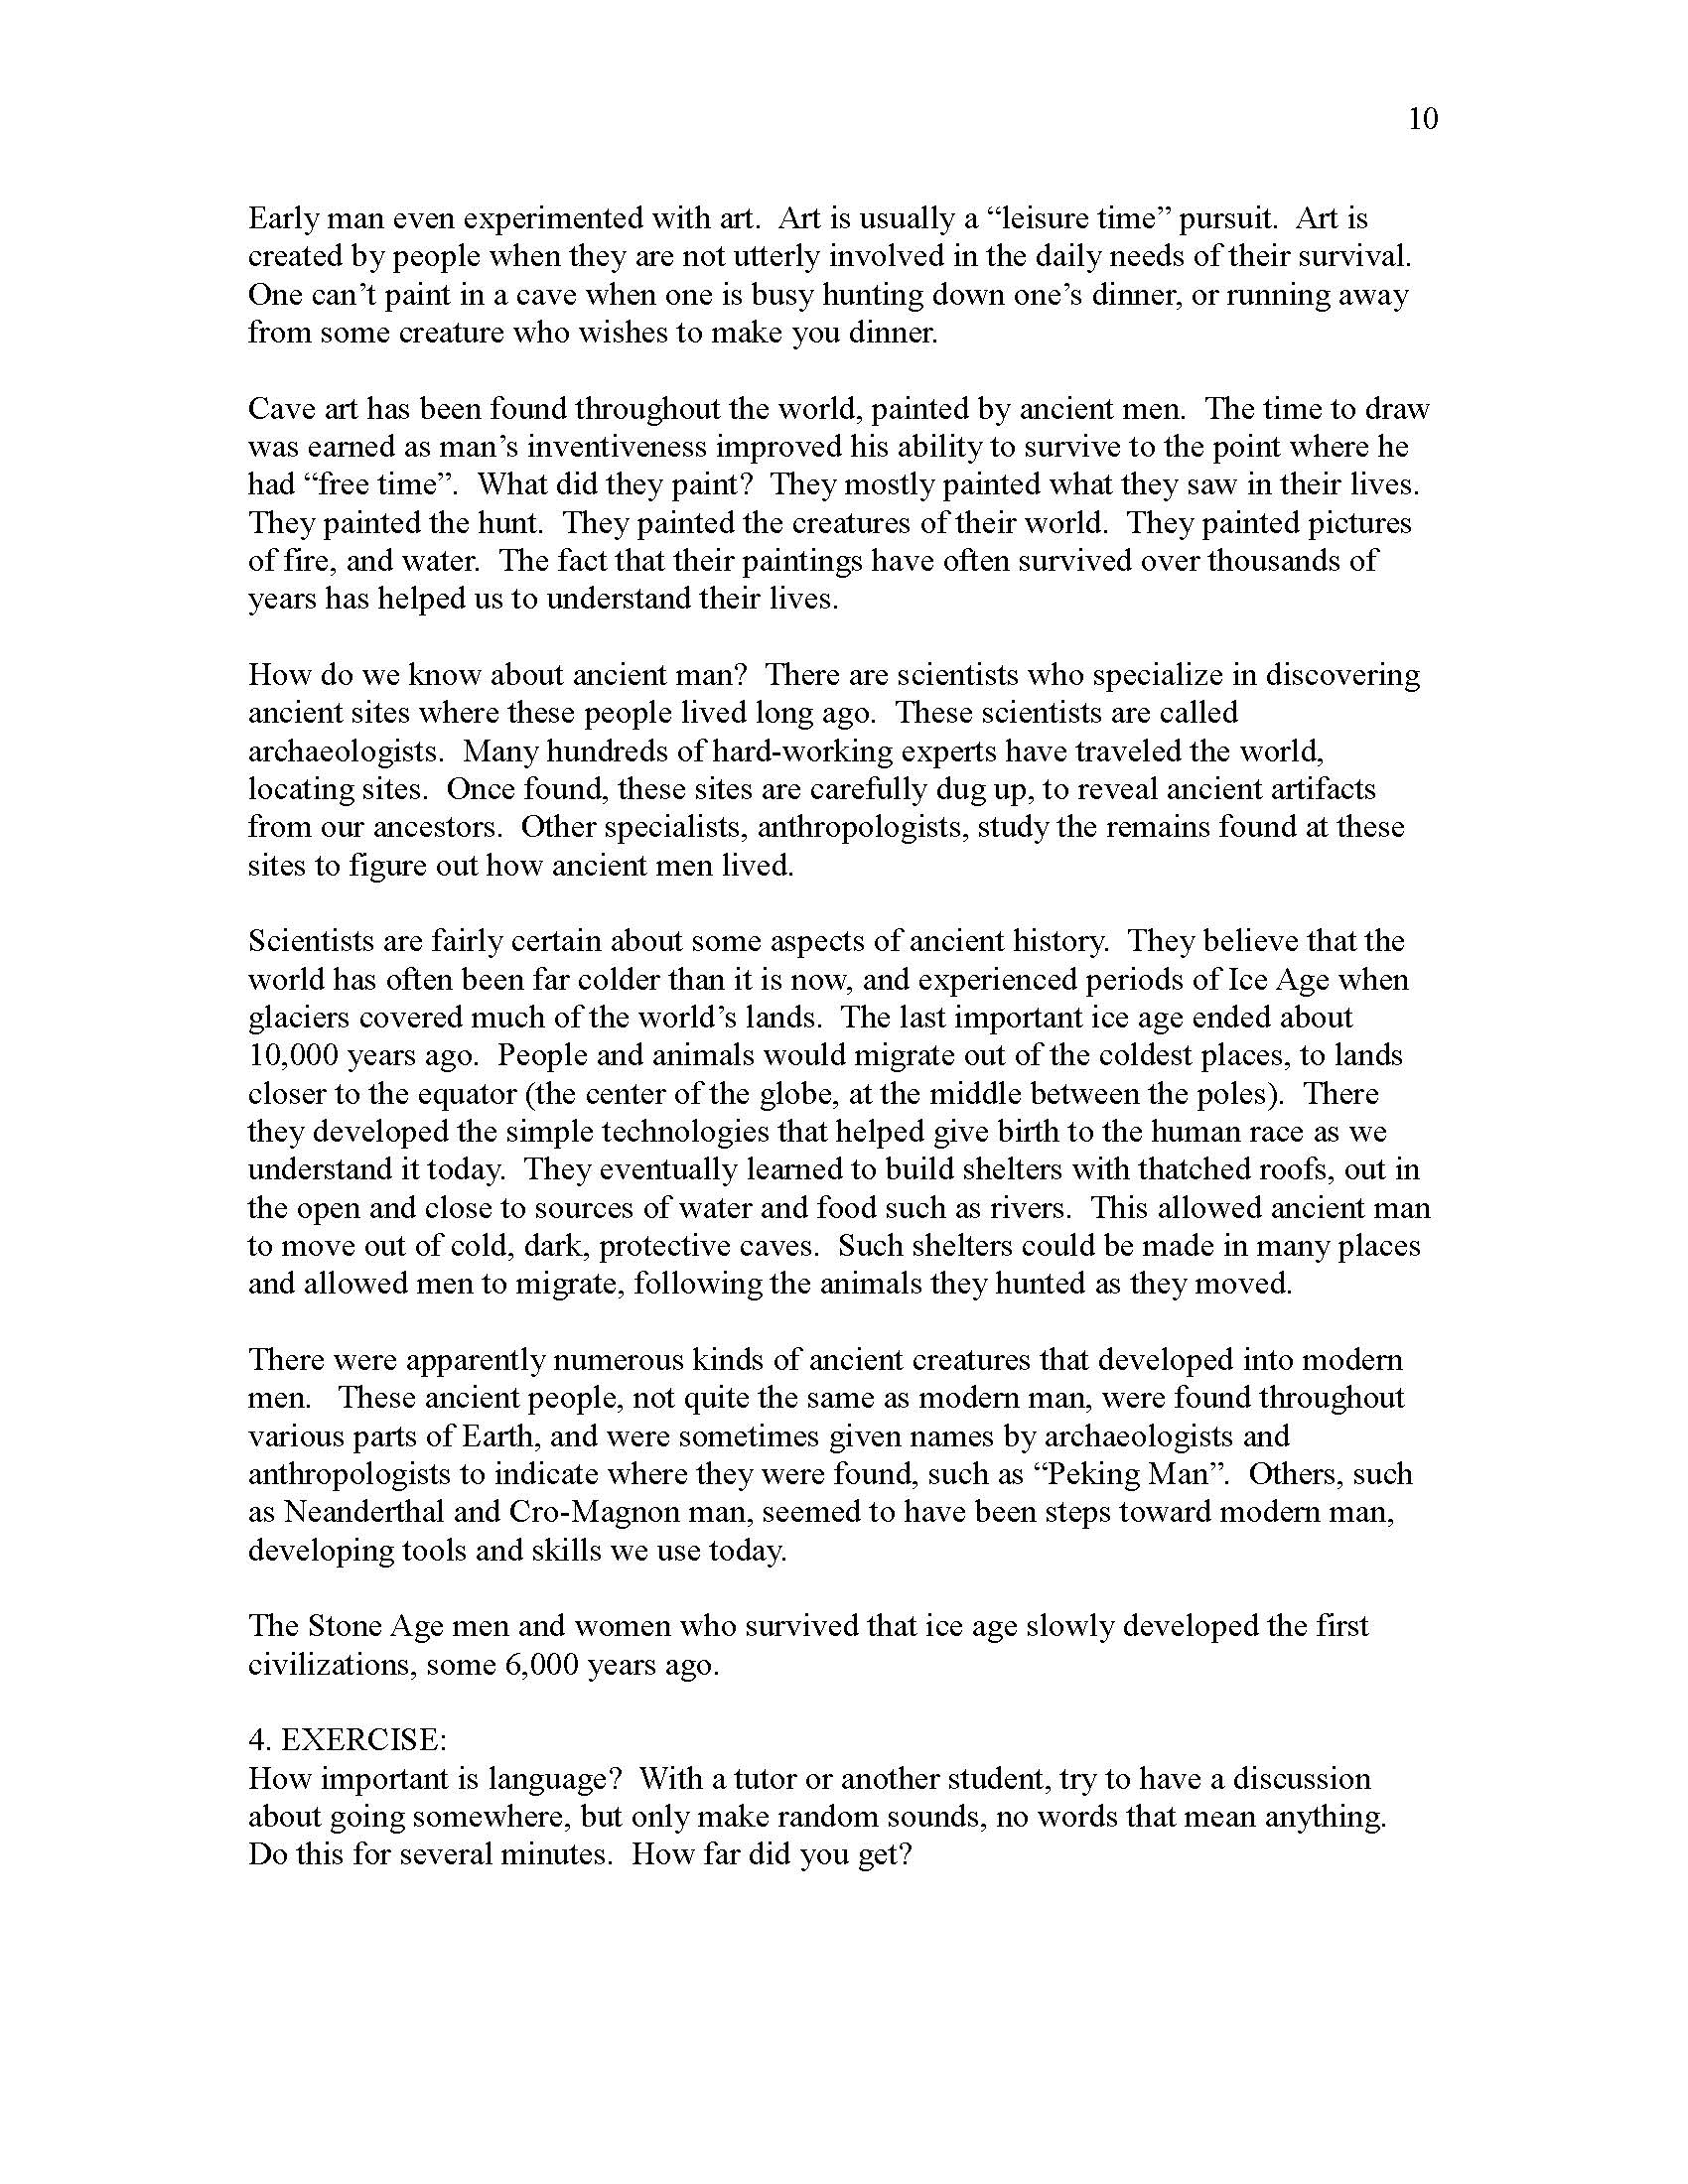 Step 4 History 2 - Early Civilizations_Page_011.jpg